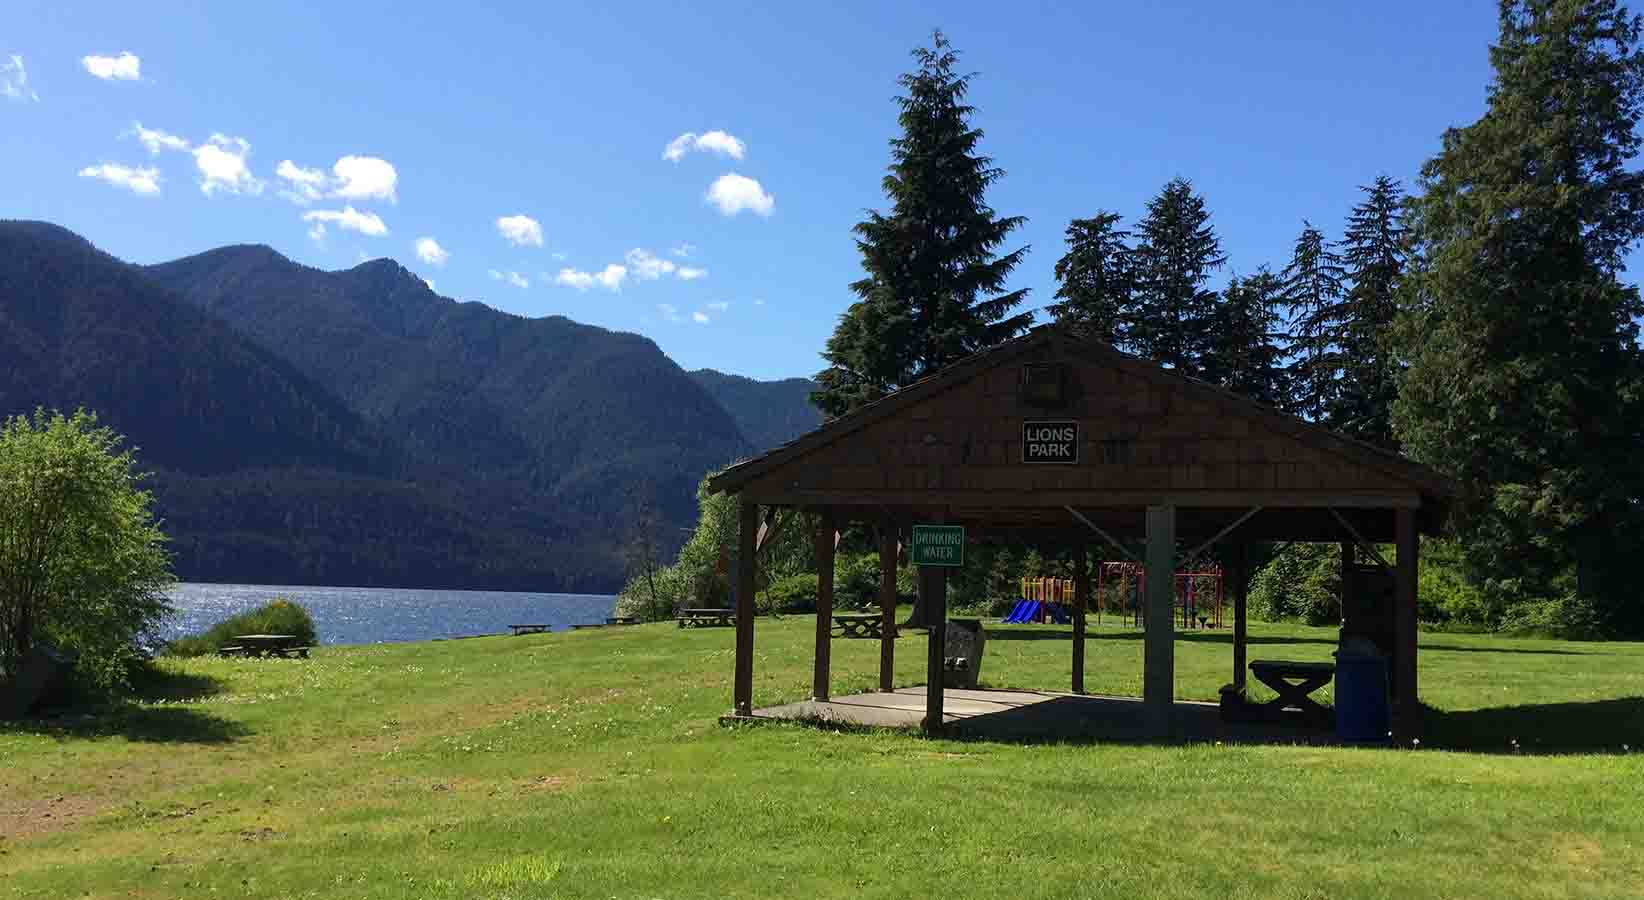 Lions Park in Port Alice. View of a shelter with water and mountains in the background.